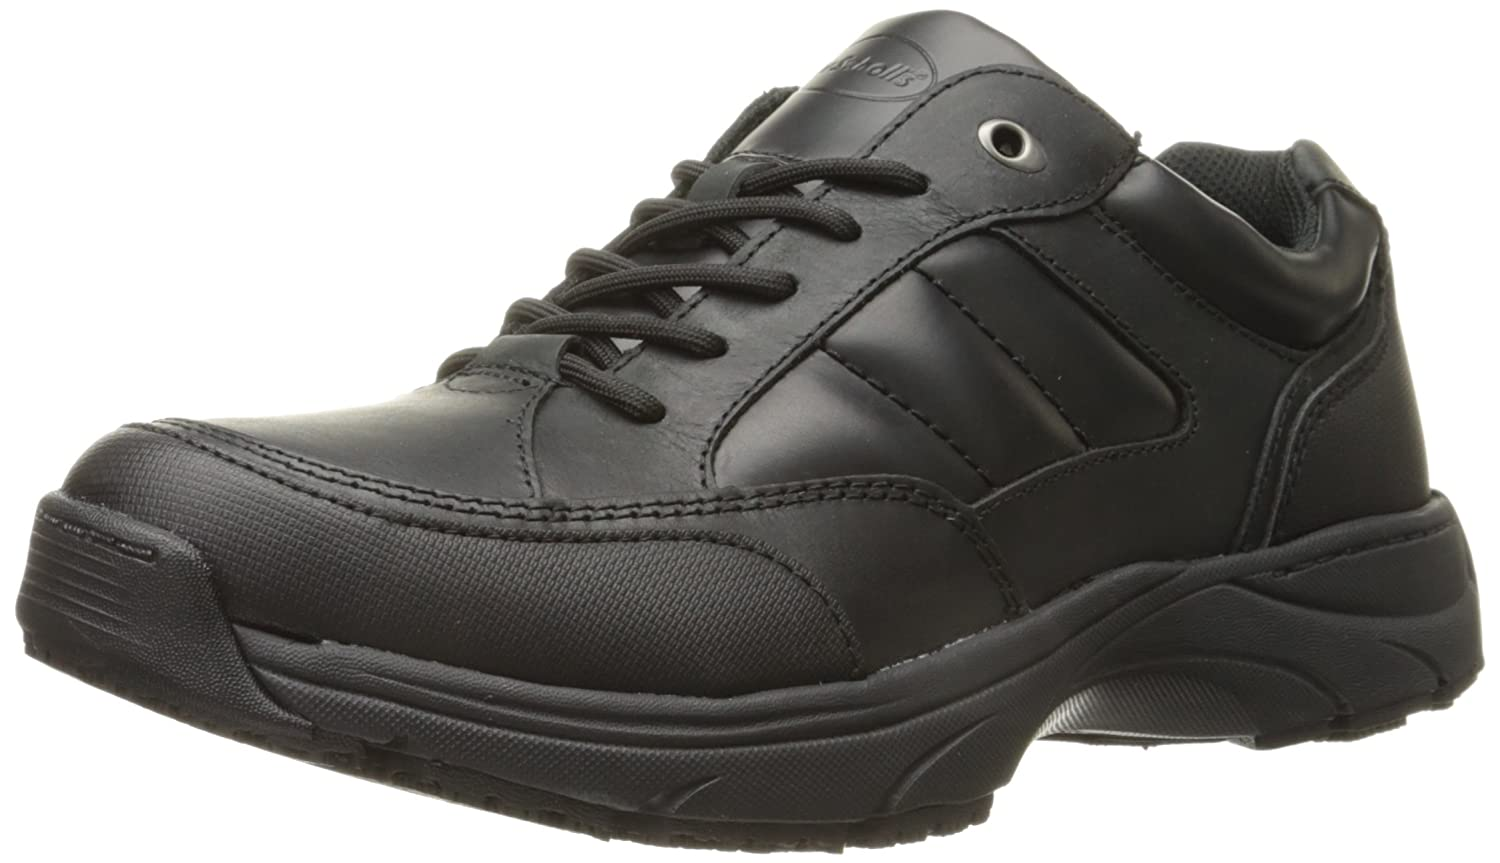 Mens Safety Shoes Scholls Dr Work Mens Tx Cambridge Slip Resistant Work Shoes Black 7 5 Safety Shoes Factory Outlet